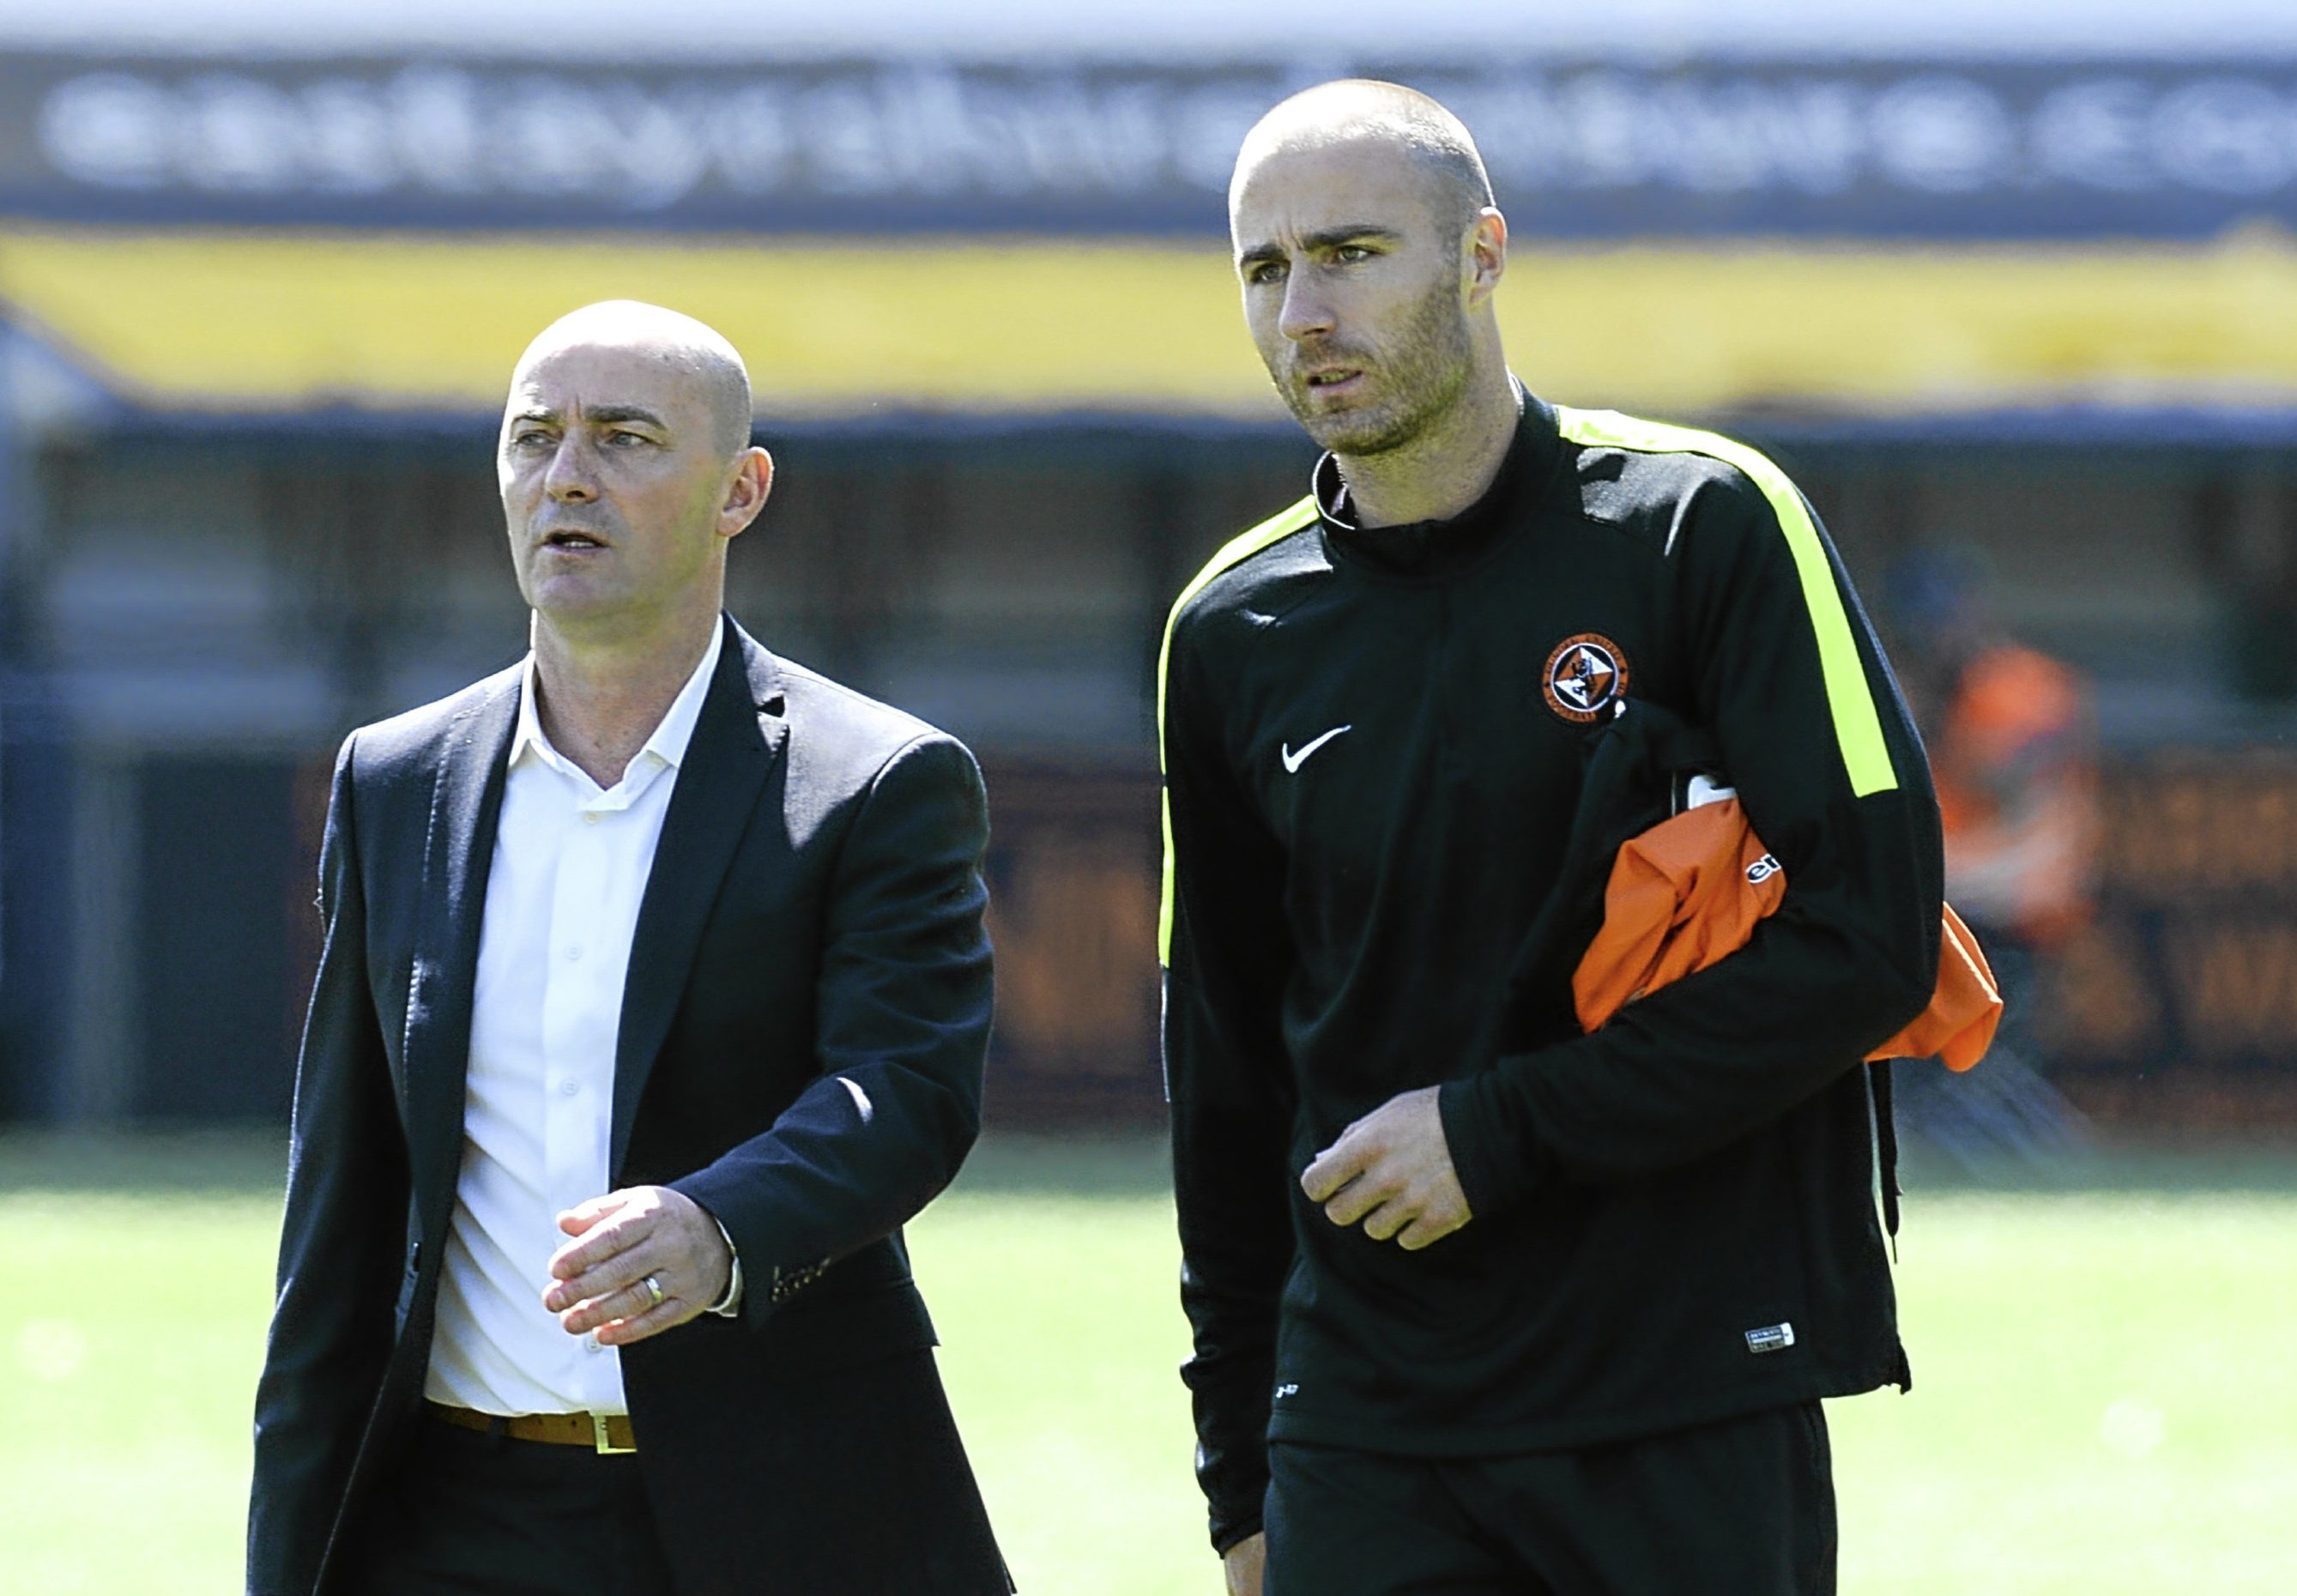 Former Dundee United caretaker manager Gordon Young (left) and Sean Dillon walk off the pitch at full time after a 4-2 win away to Kilmarnock in the final Premiership game of last season.